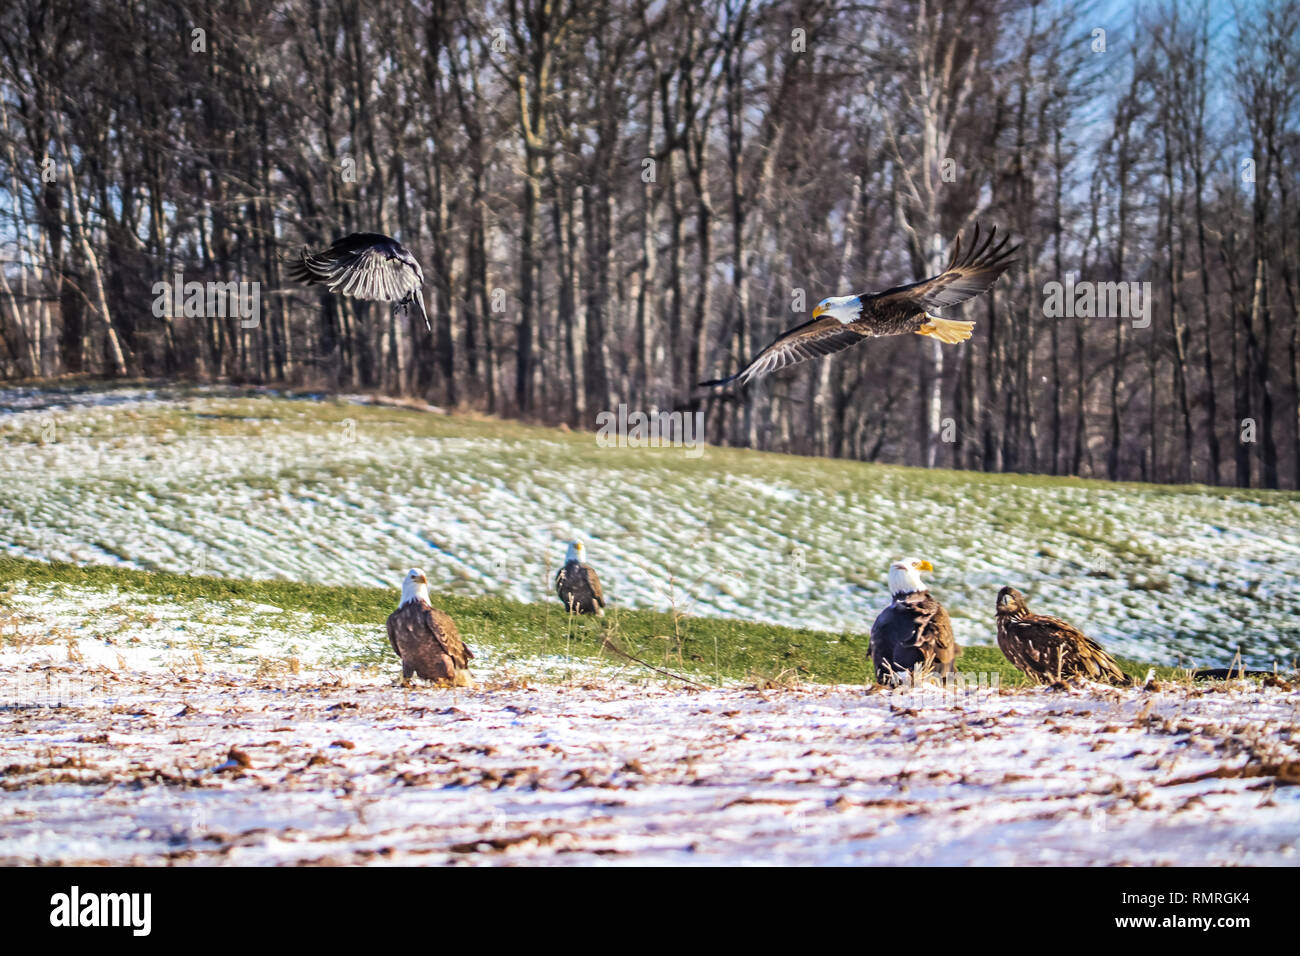 A bald eagle flying in for landing as a raven flees to safety. - Stock Image